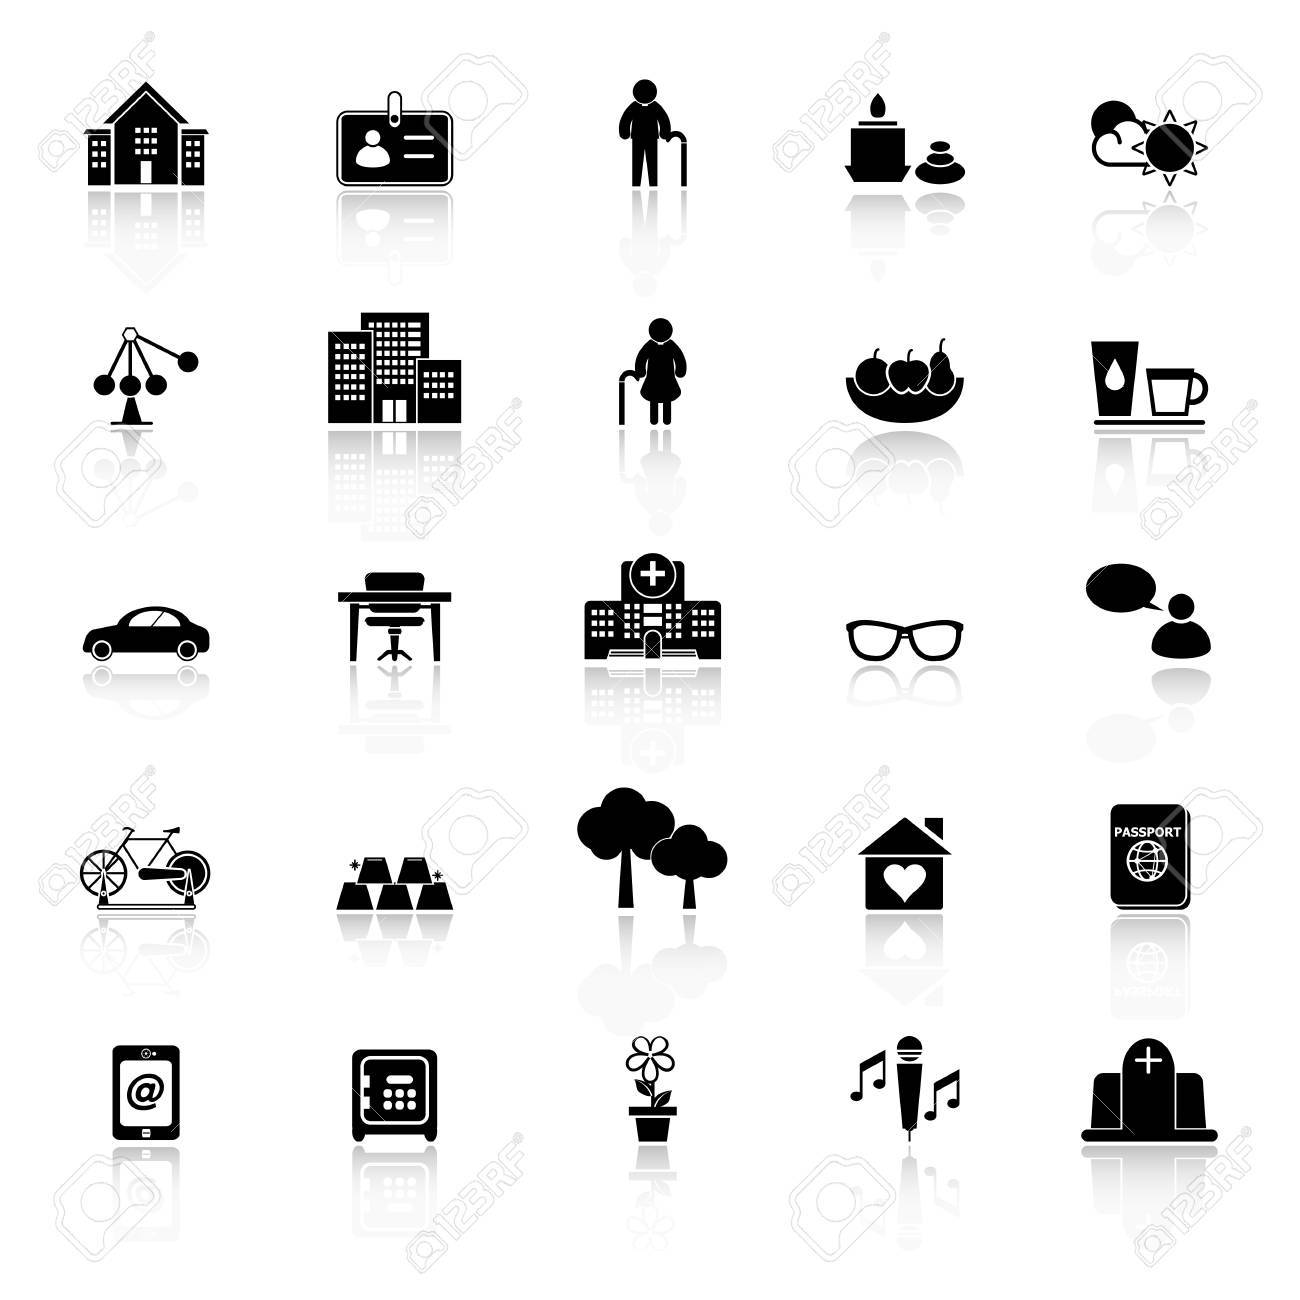 Retirement community icons with reflect on white background, stock vector - 35610462